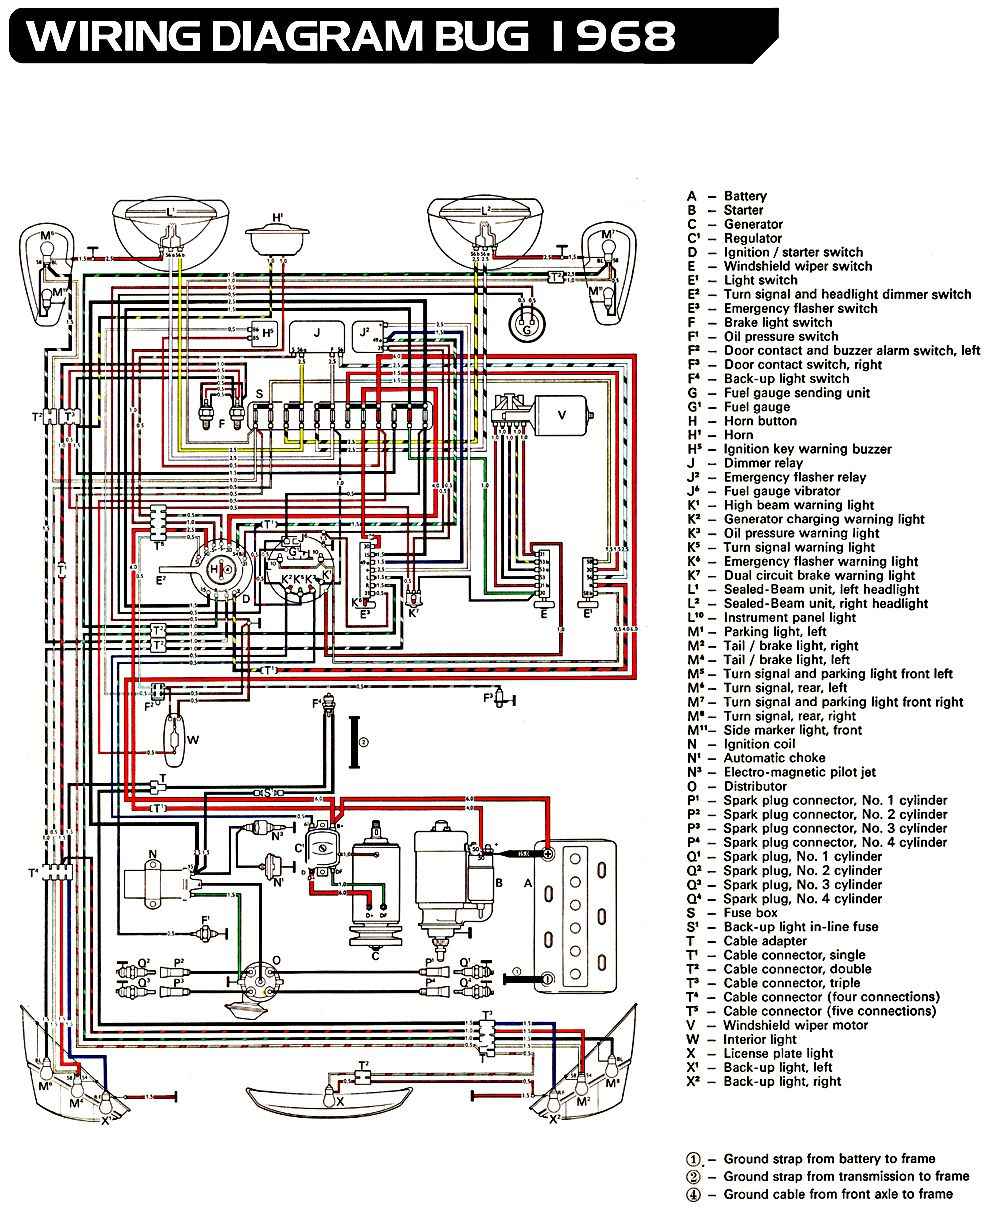 vw bug ignition wiring diagram 73 vw wiring diagram free vw